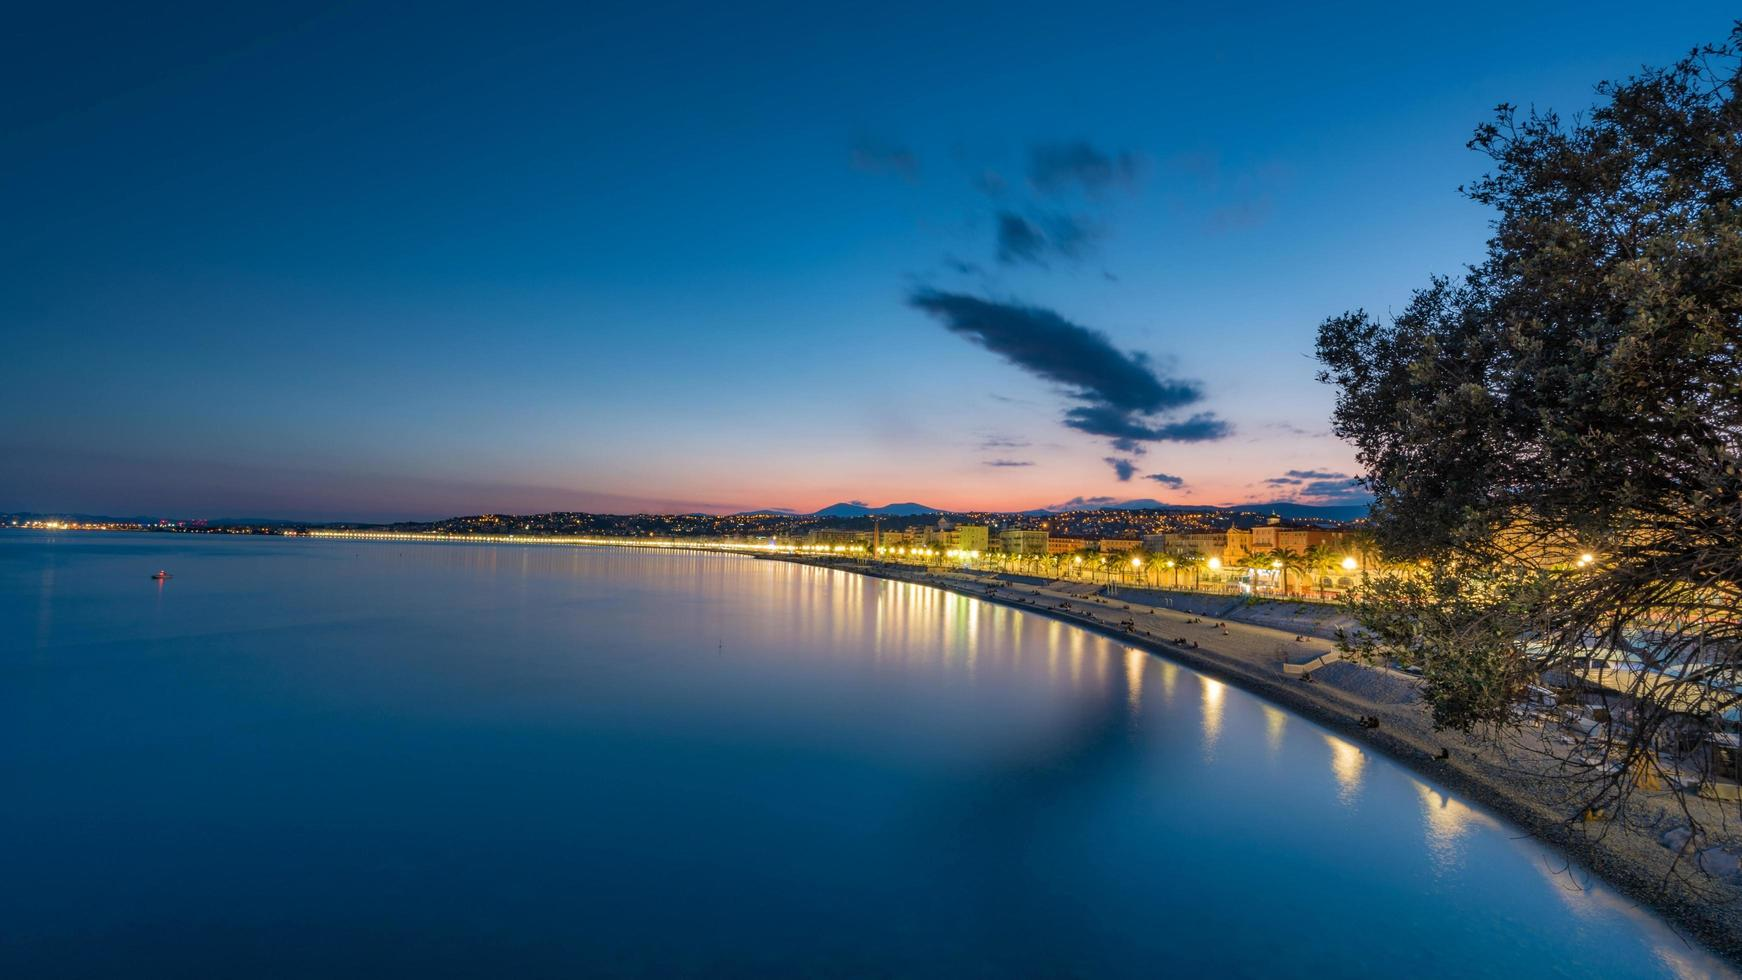 Promenade des Anglais in Nice, France during sunset photo